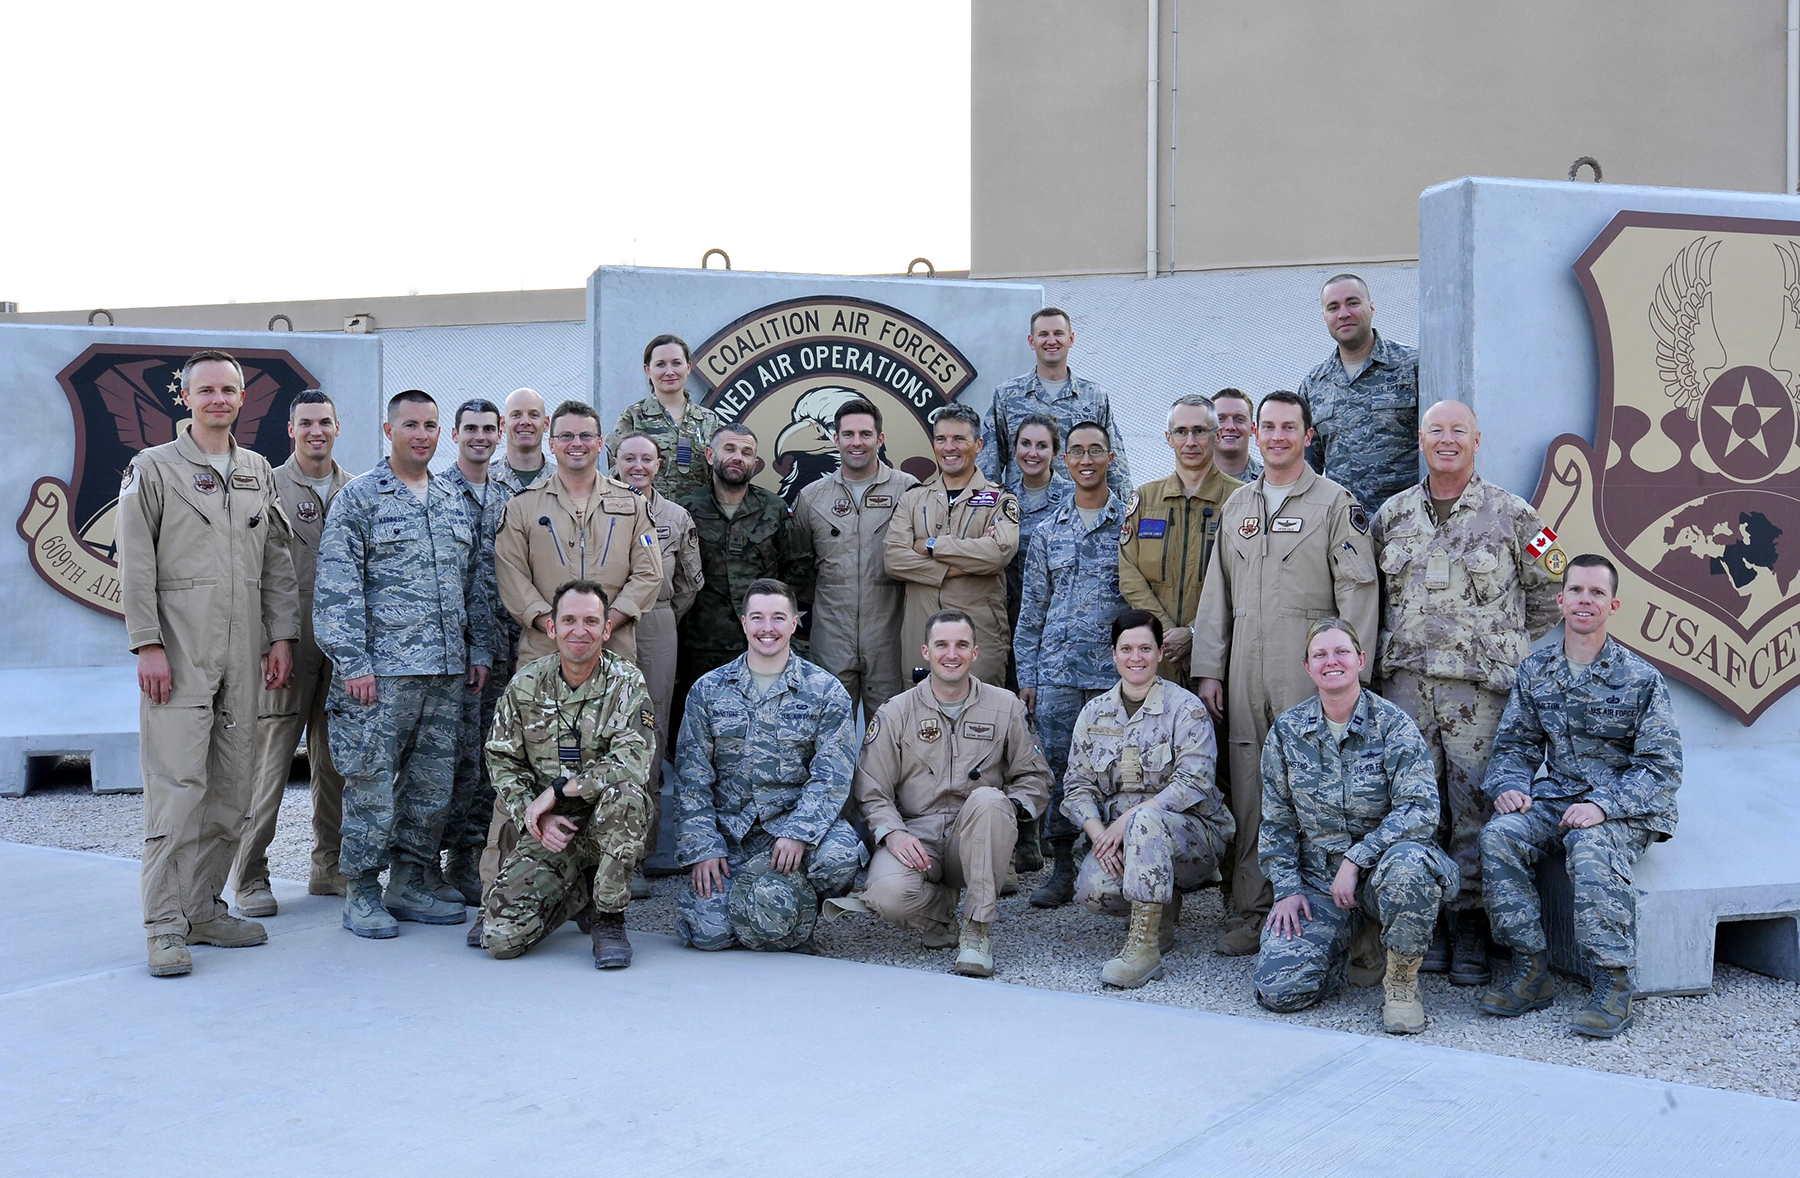 Wearing his nation on his sleeve, Major John Blair (second row, right) stands outside the Air Operations Centre in Kuwait with his colleagues from 26 coalition nations. PHOTO: USAF